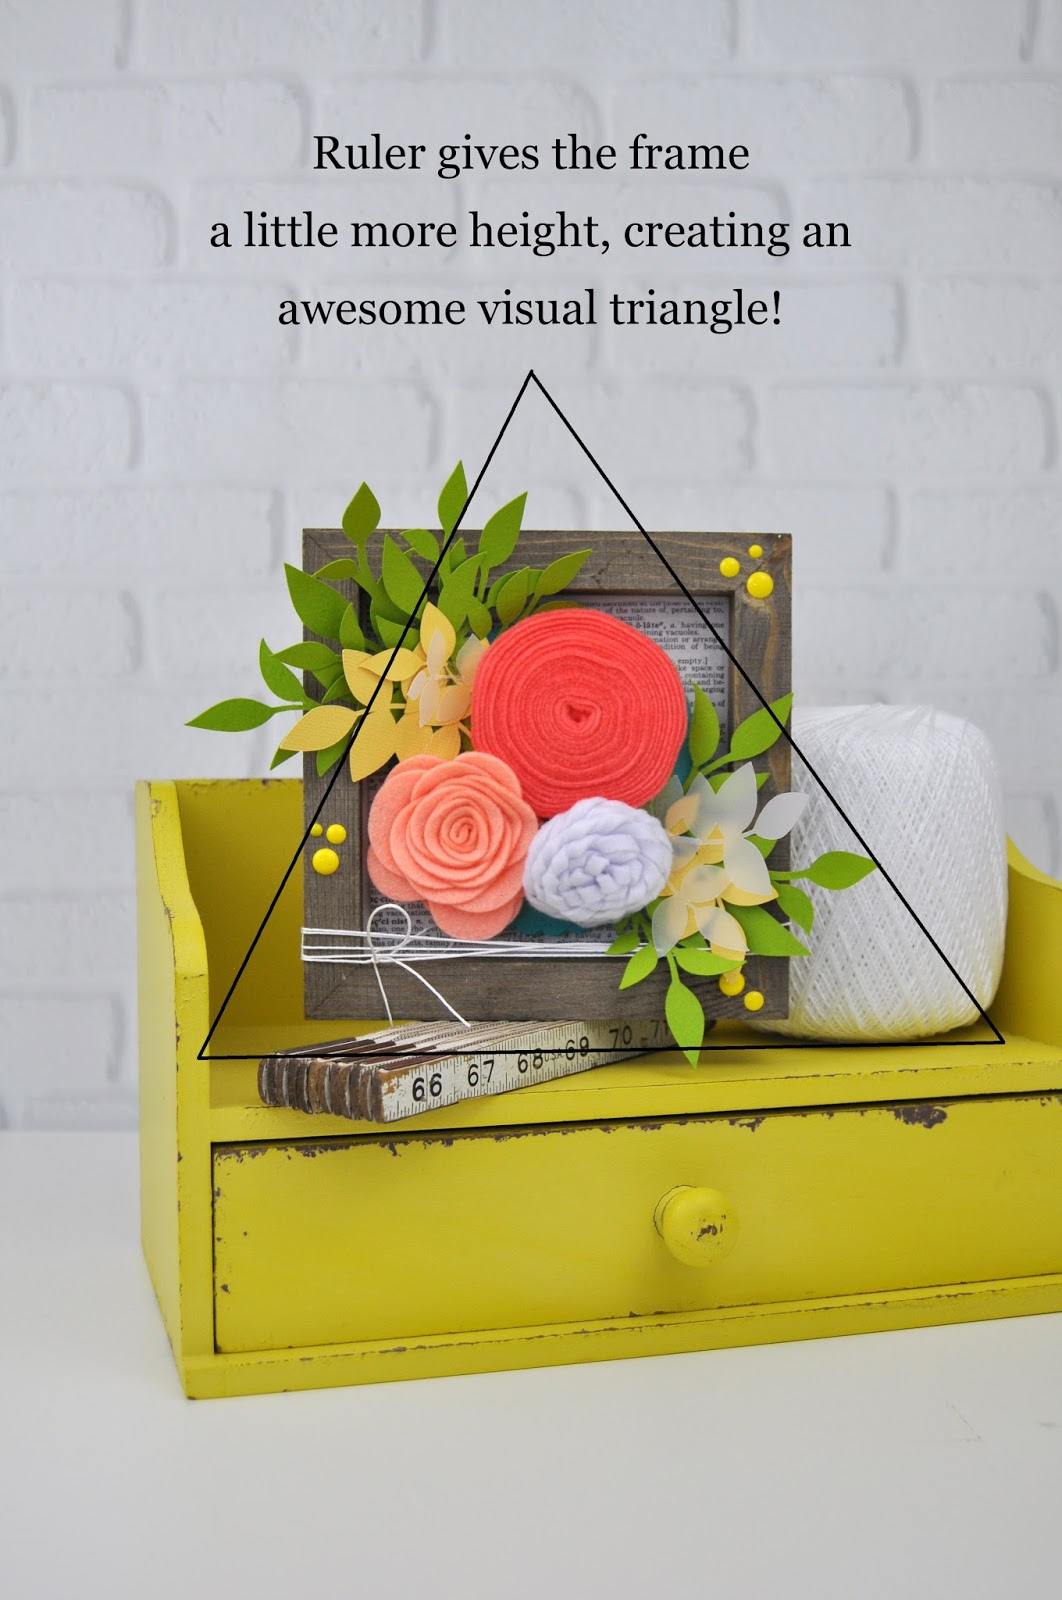 Tips and tricks for staging photos for bloggers and creatives. How to stage blog photography photoshoots with Jen Gallacher. Blogging photography tips. #photography #blogging #jengallacher